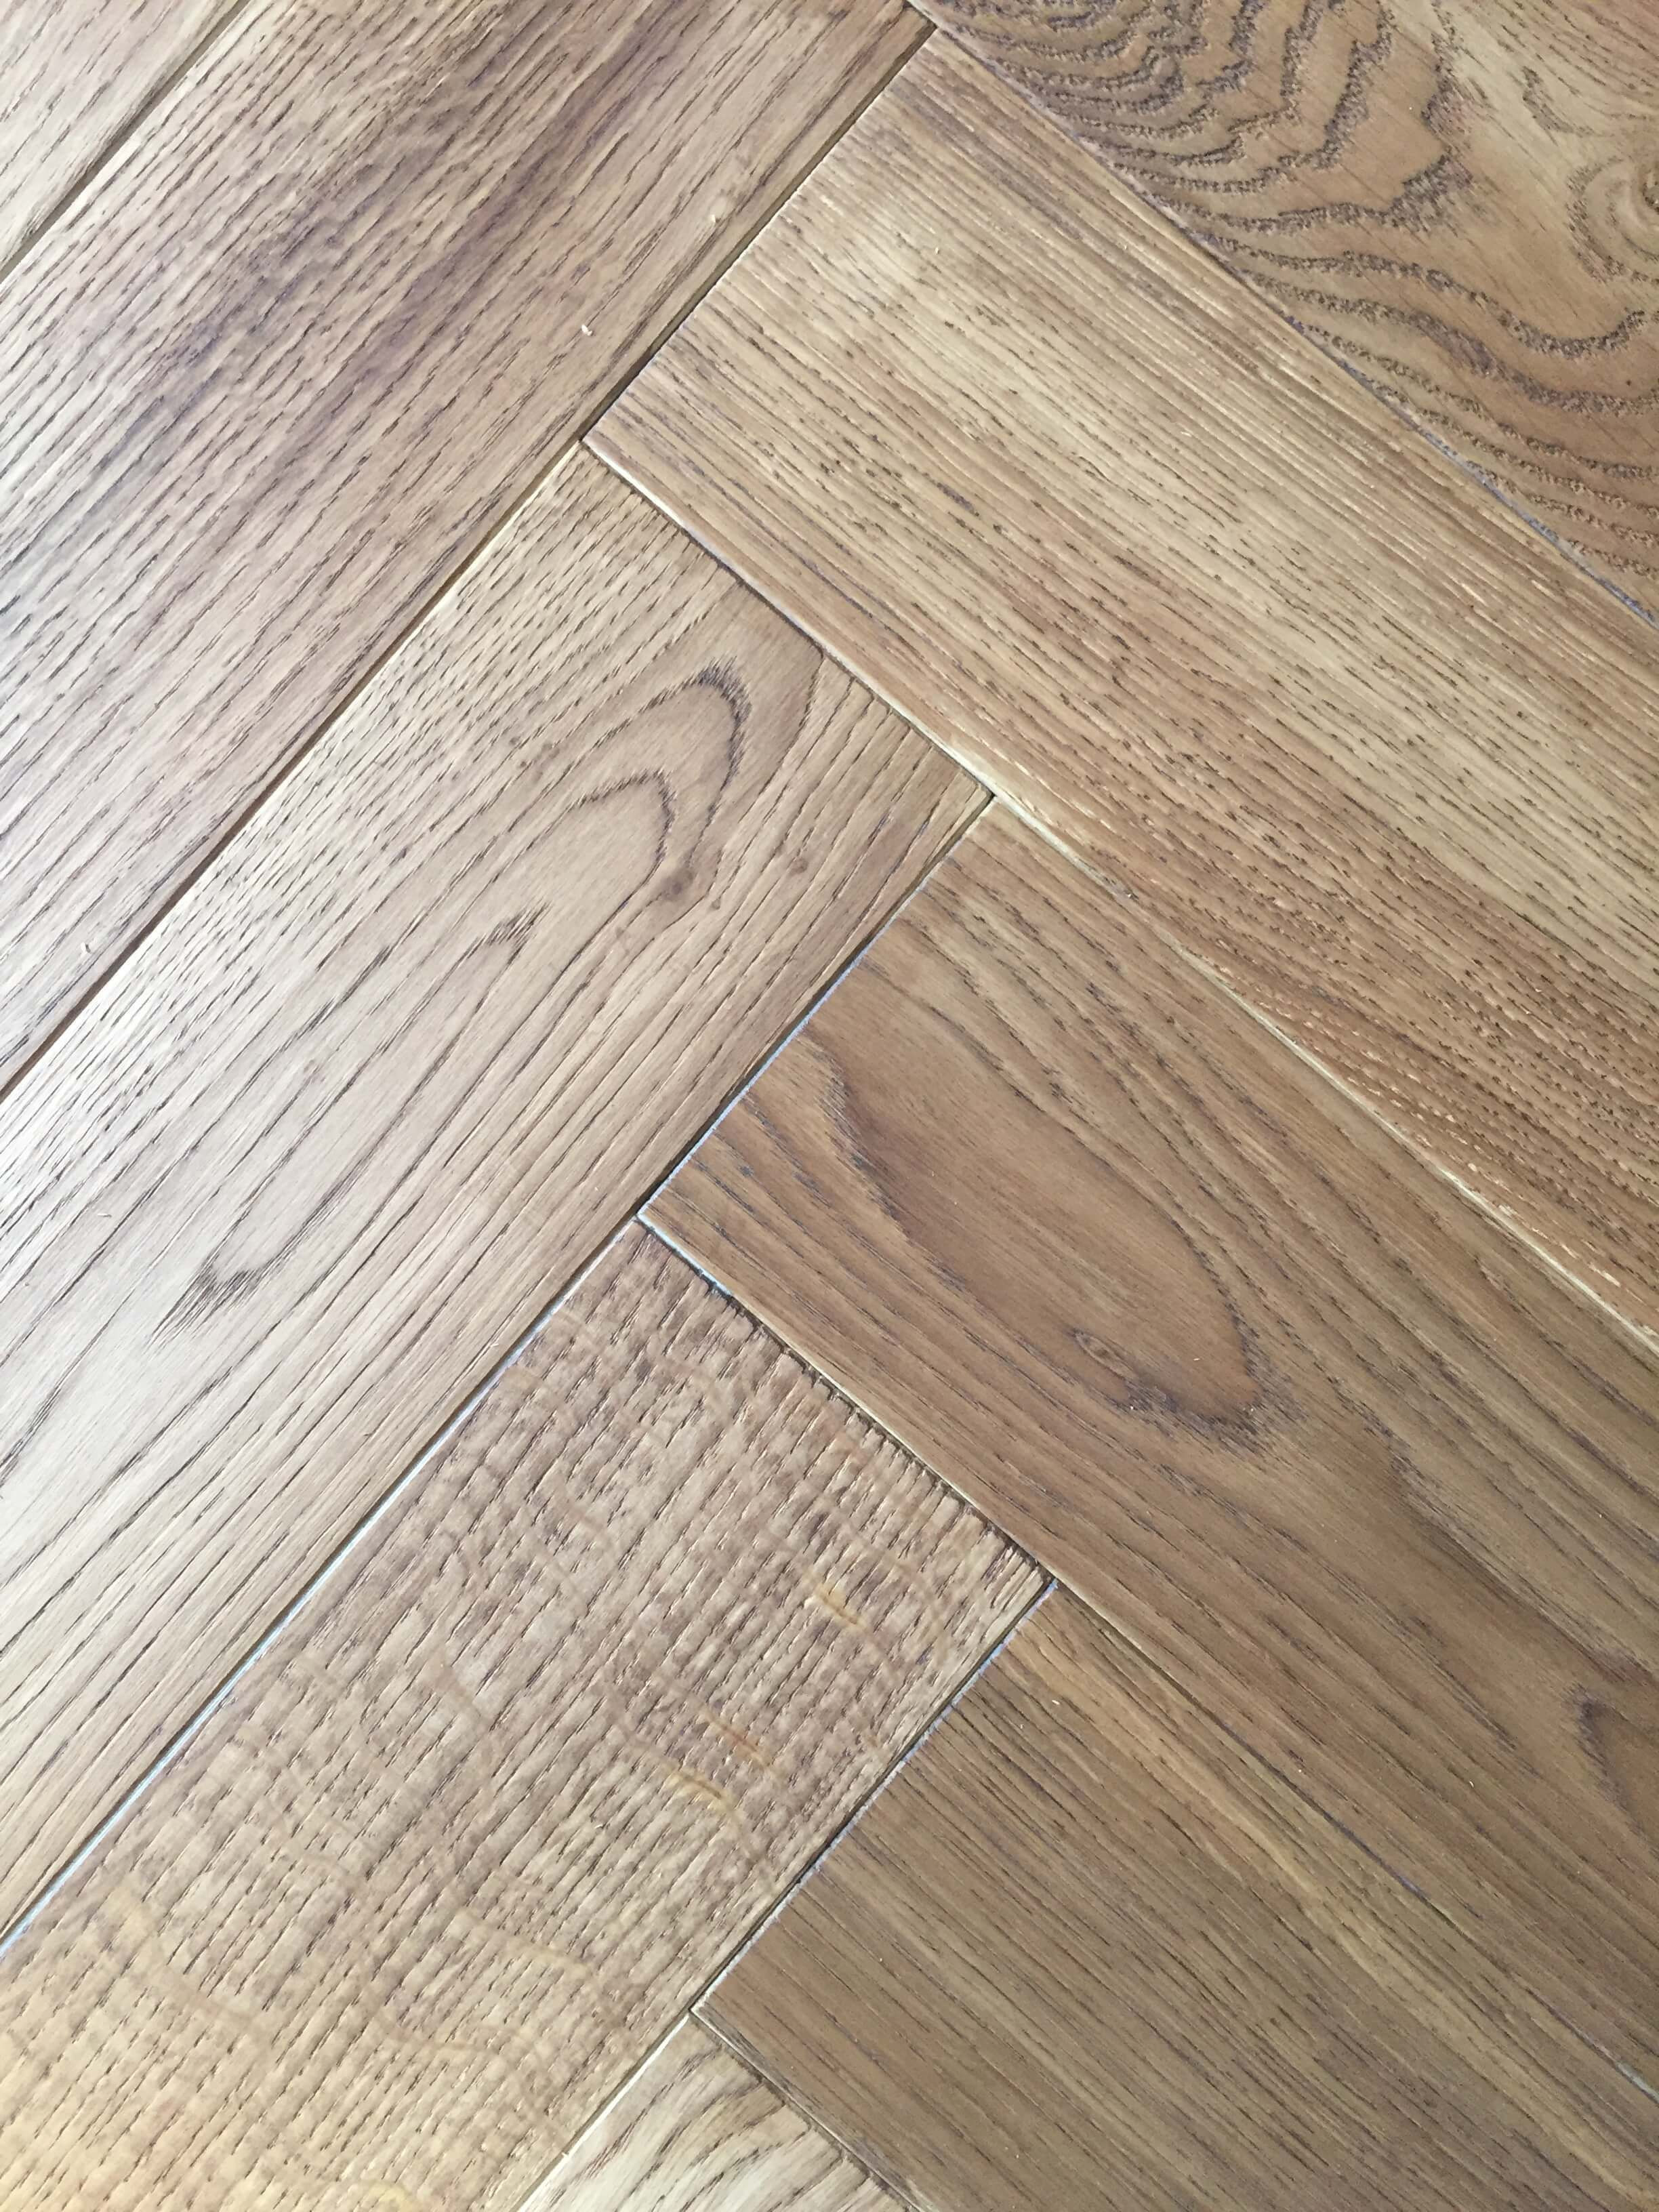 bamboo flooring versus hardwood flooring of roll out laminate wood flooring bamboo vs hardwood flooring new throughout roll out laminate wood flooring bamboo vs hardwood flooring new hotel od barcelona projekt parklex